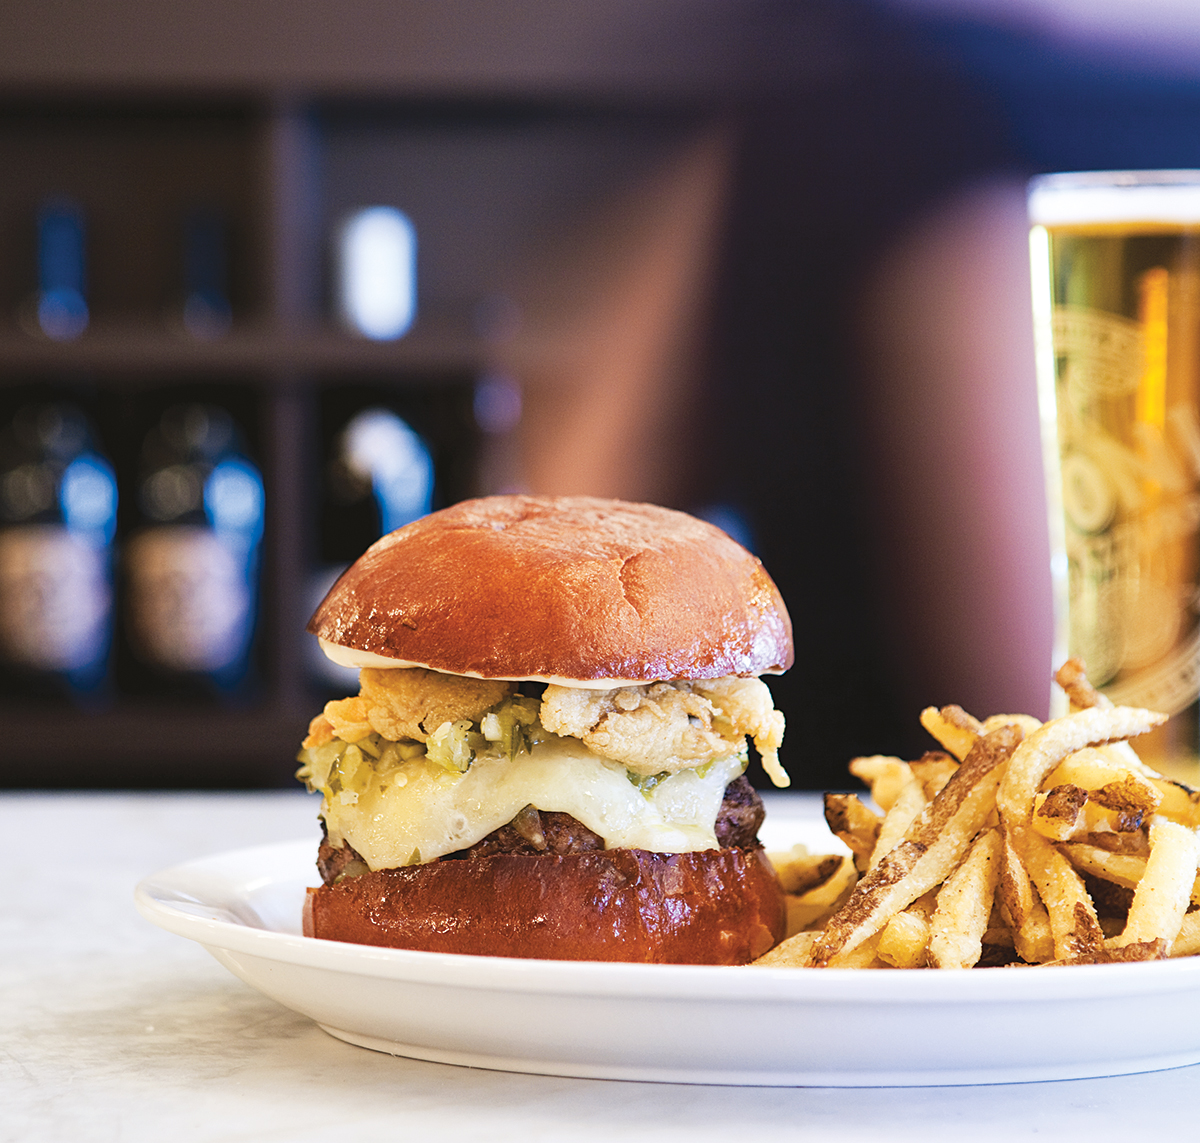 The neptuneburger comes laden with fried oysters and cheddar. Photo by Keller + Keller.